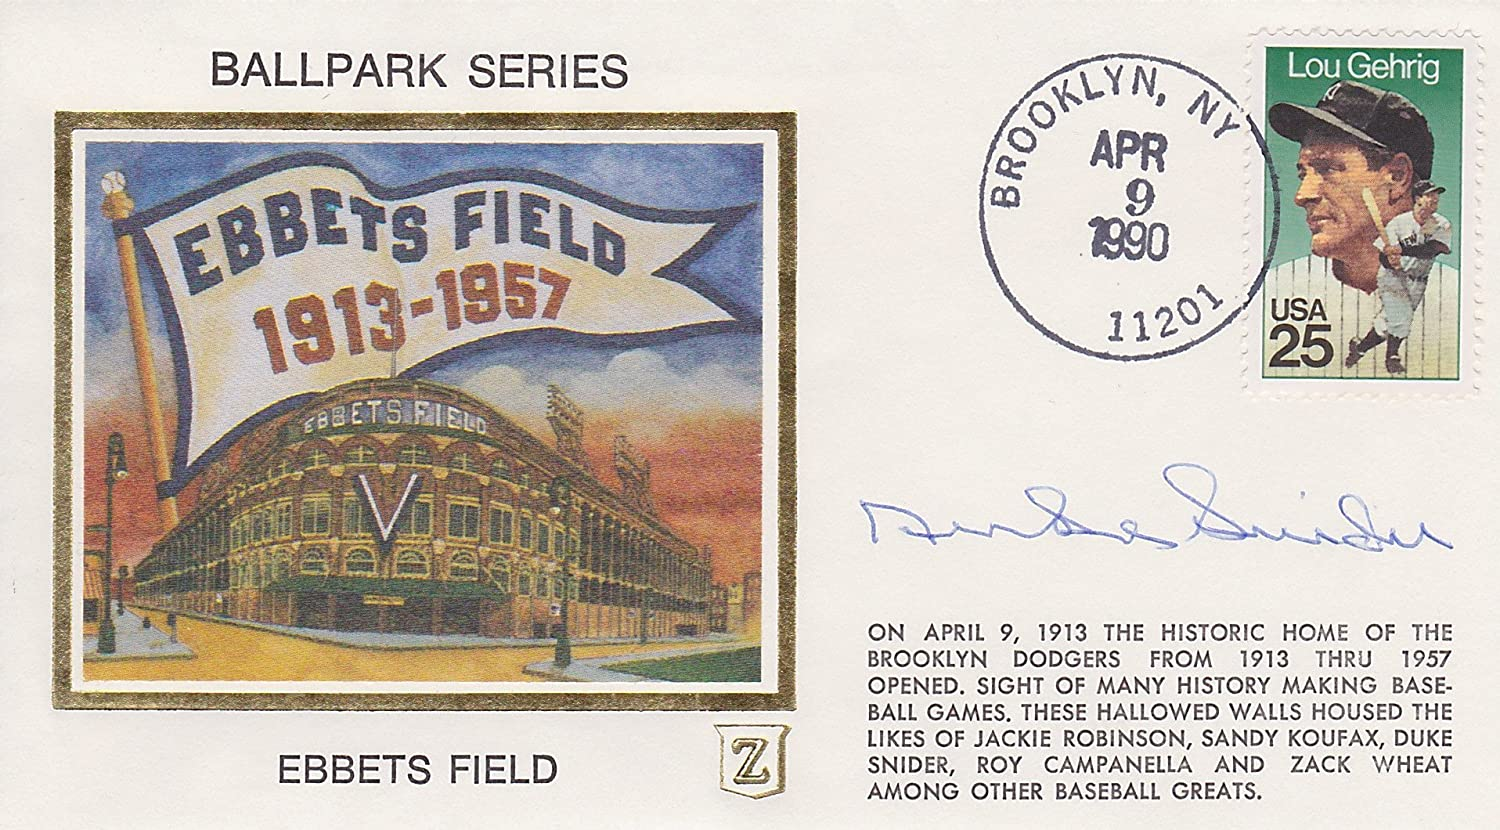 duke snider signed ebbets field ballpark series brooklyn dodgers duke snider signed ebbets field ballpark series brooklyn dodgers postmark cover at s sports collectibles store